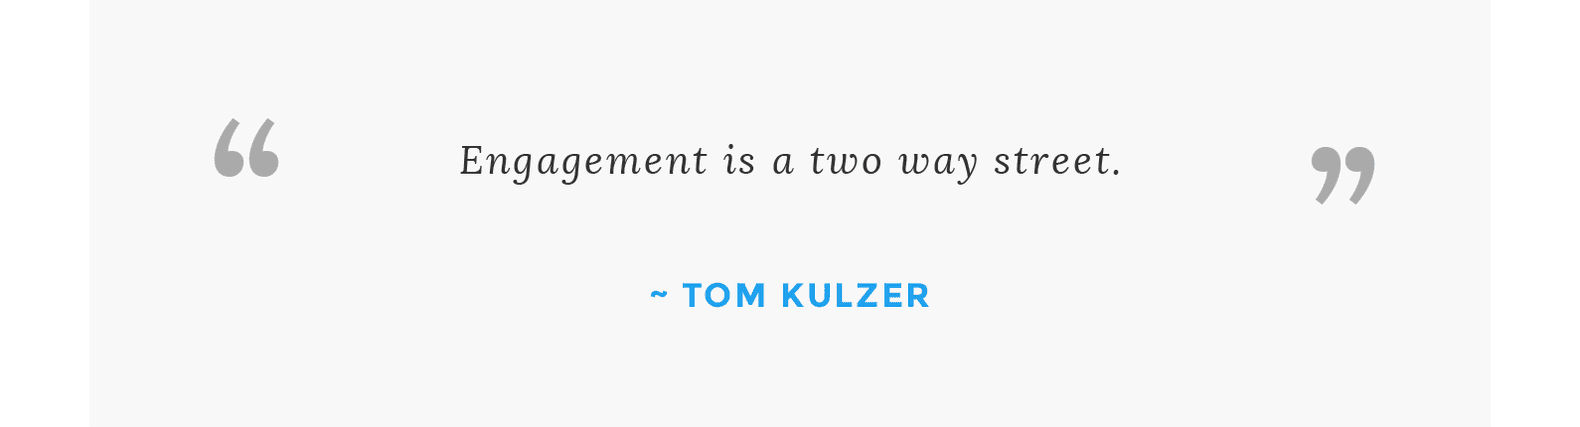 795x215-in-post-Kulzer-quote@2x